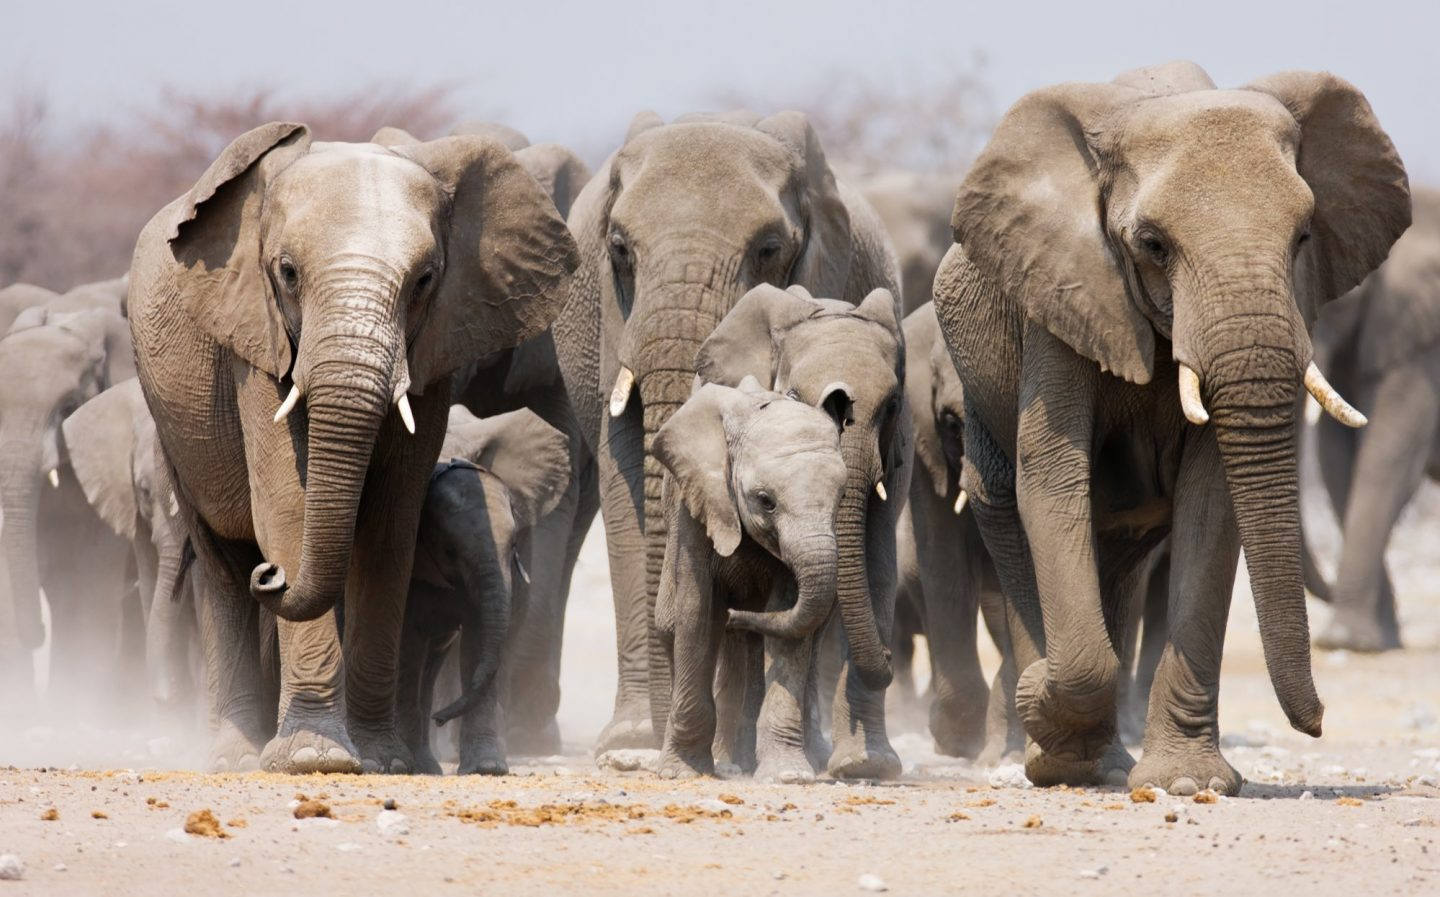 Elephants - Timeless Africa Safaris - About us